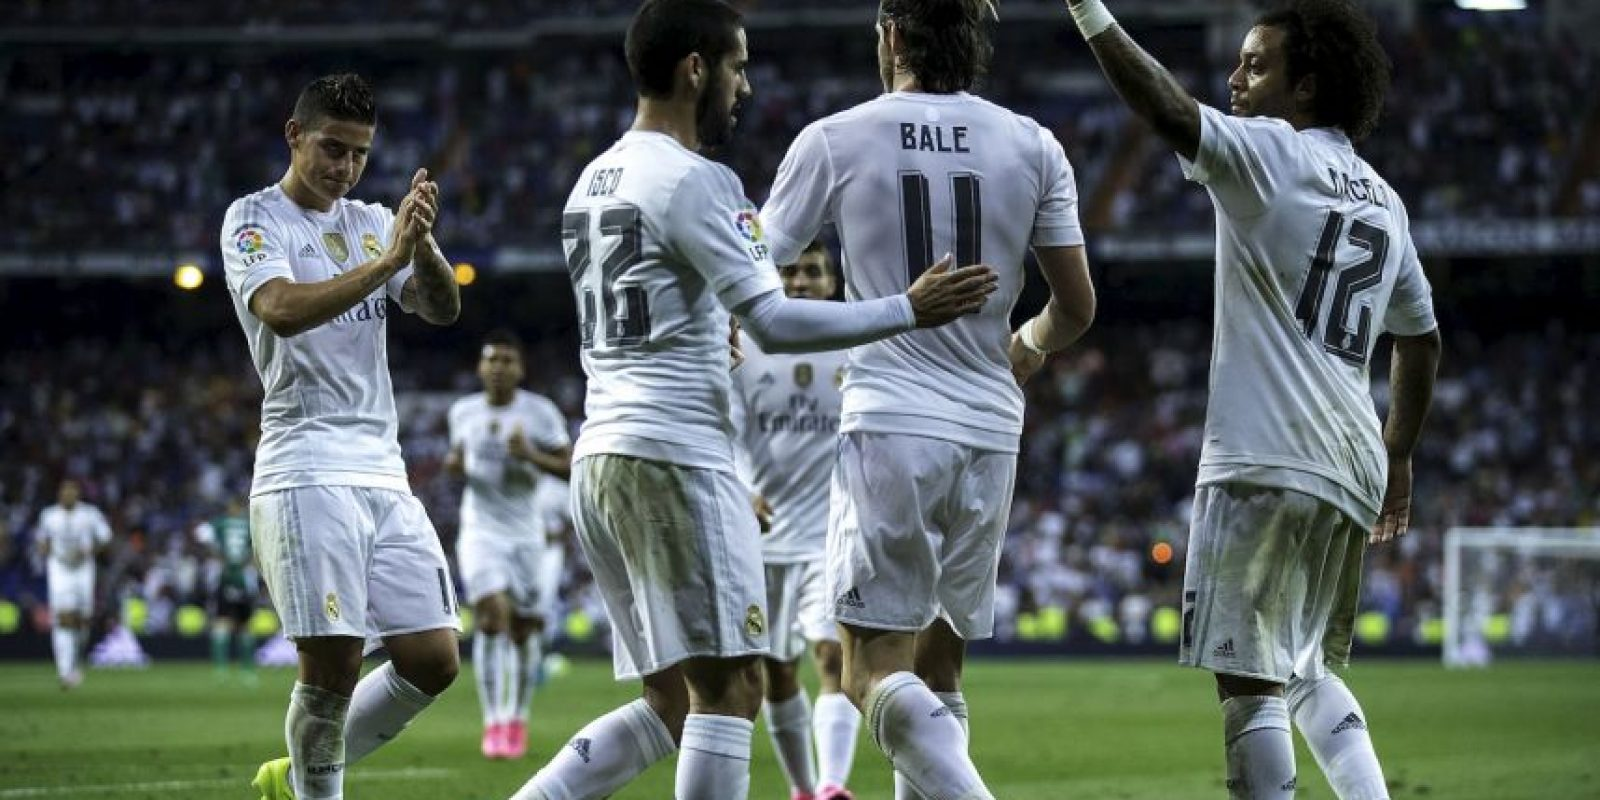 Los apostadores ven probable una final entre Real Madrid y Barcelona Foto: Getty Images